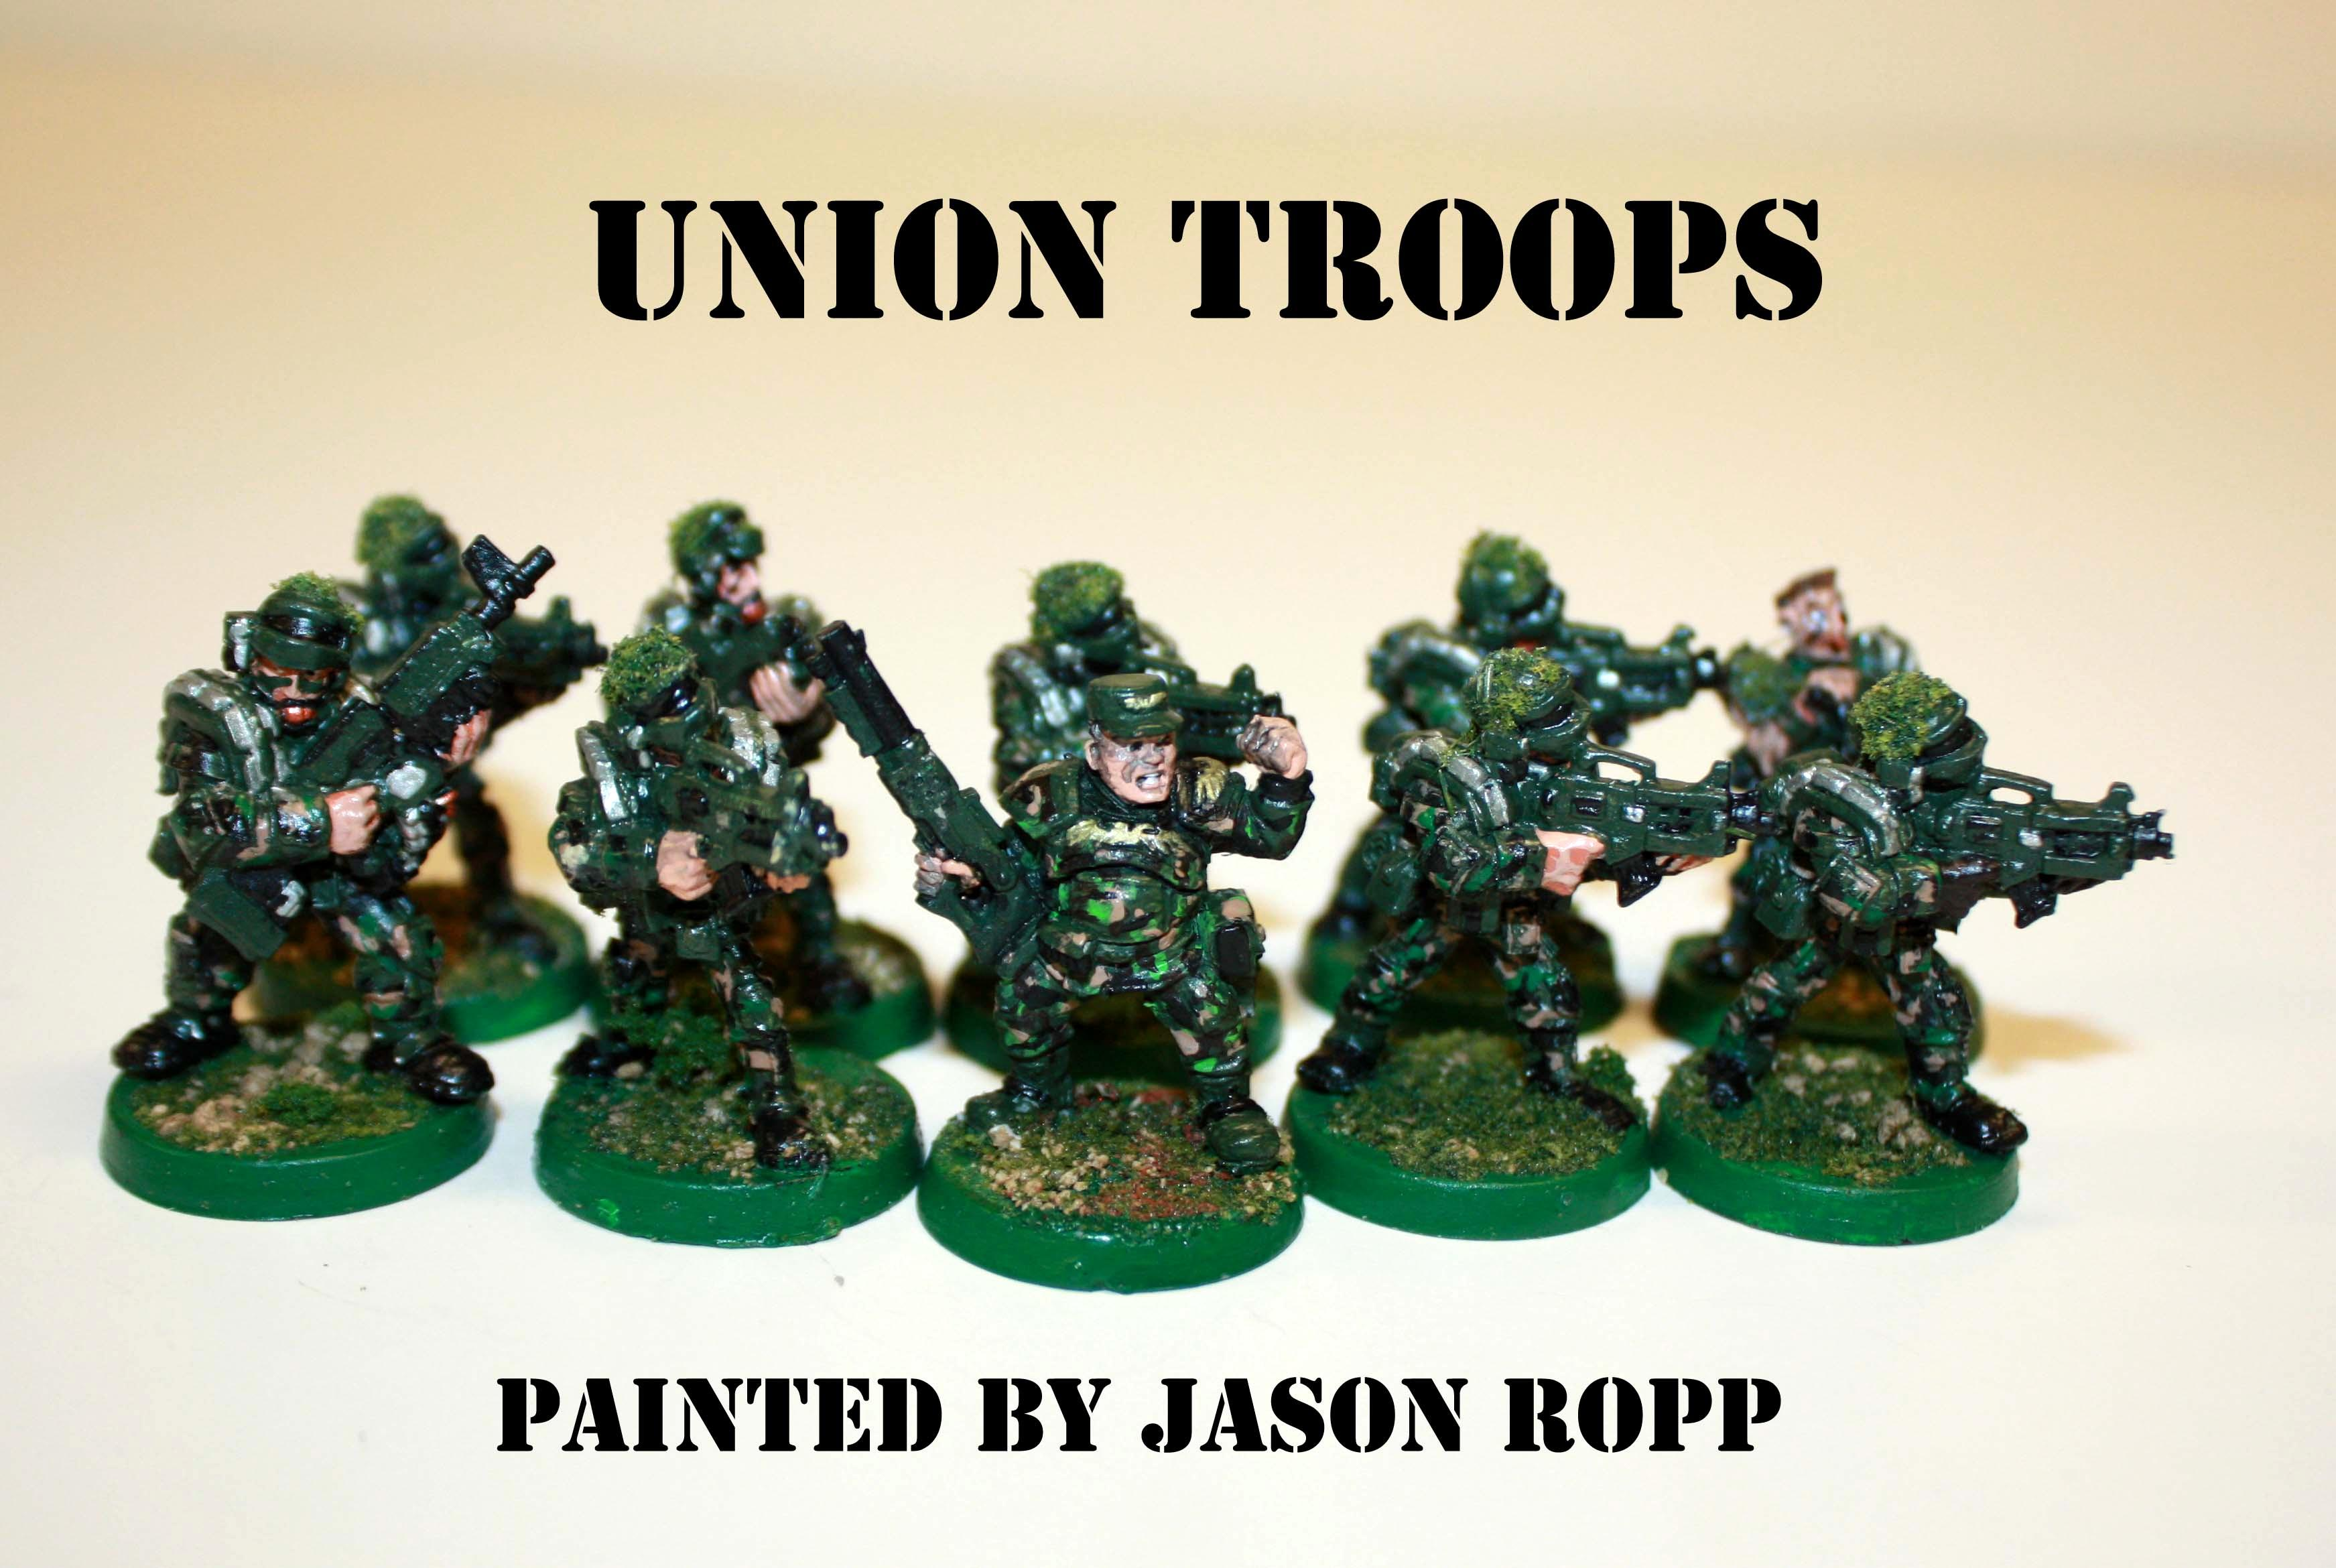 30k, Assasins, Bahamut Chapter, Black, Dreadnought, Imperial, Land Speeder, Miniatures, Painted, Silver, Snipers, Space, Space Marines, Vor The Maelstrom, Warhammer 40,000, Warhammer Fantasy